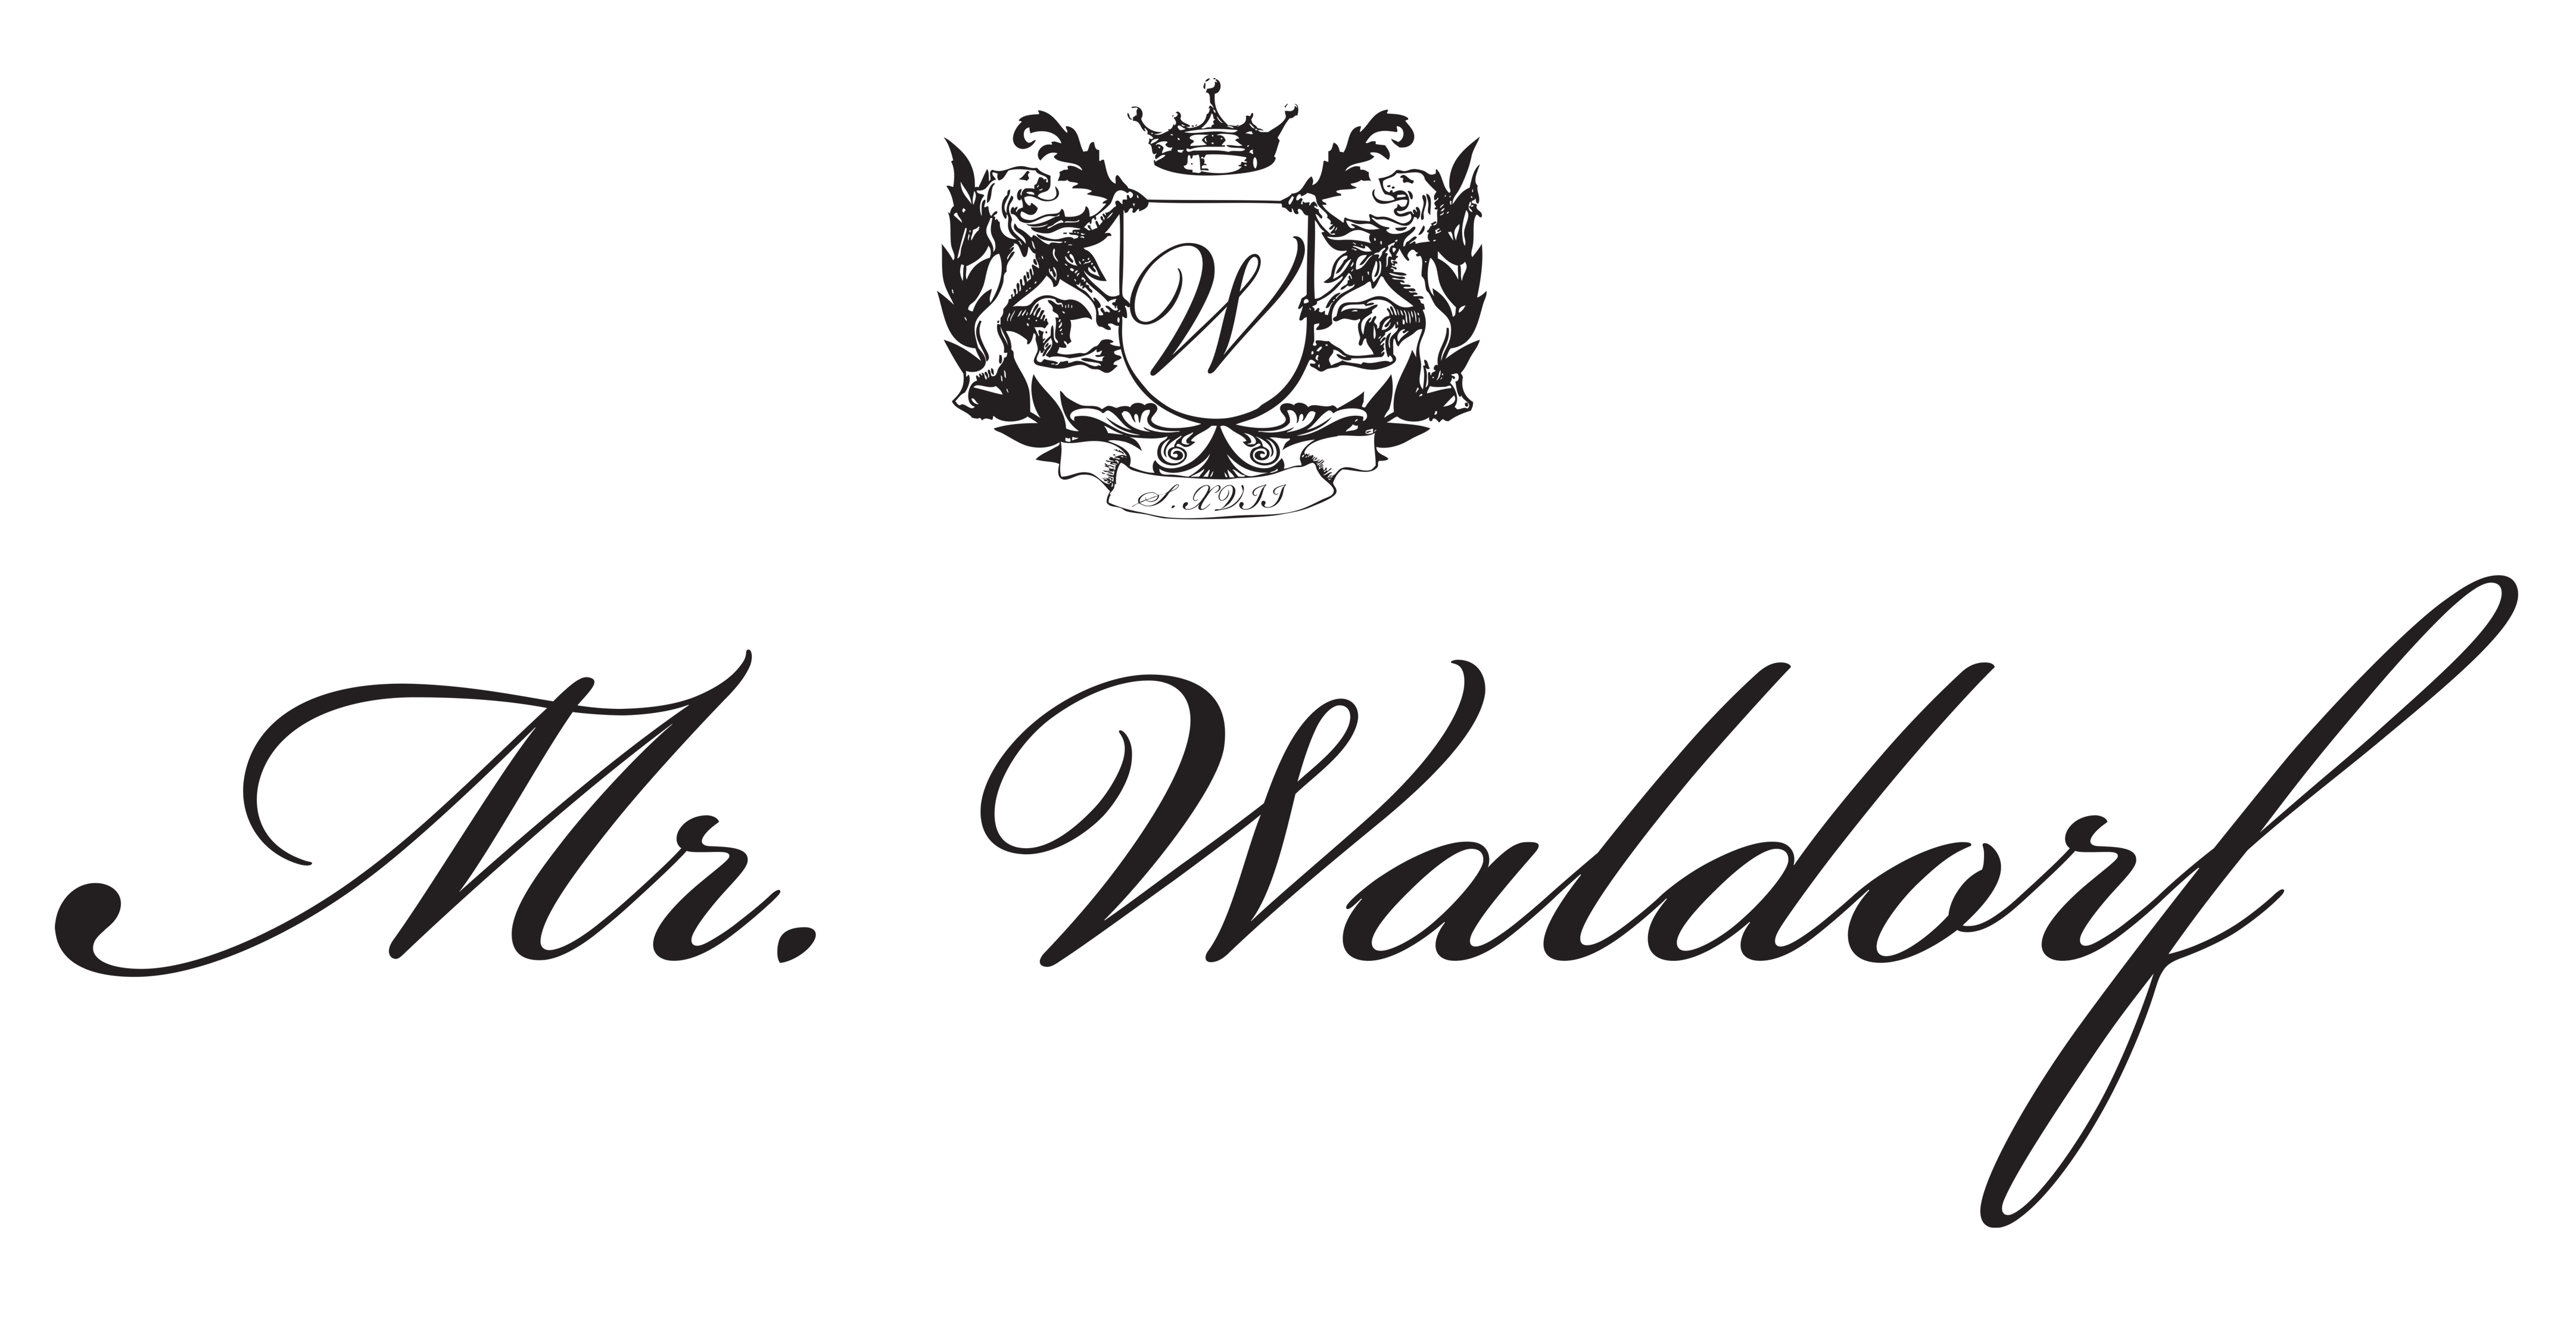 Mr. Waldorf